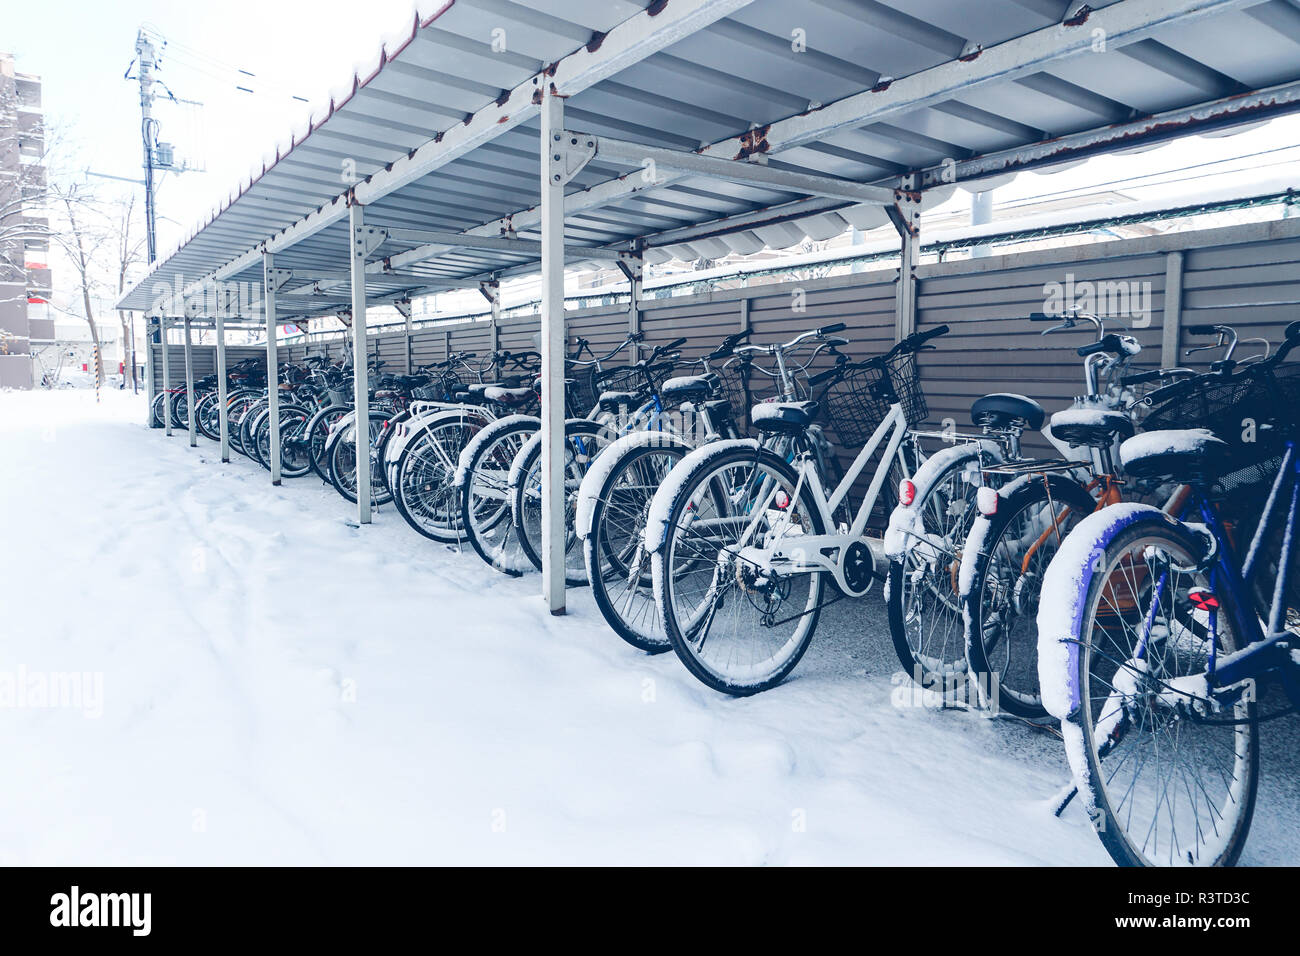 bicycle in the garage full of snow - Stock Image